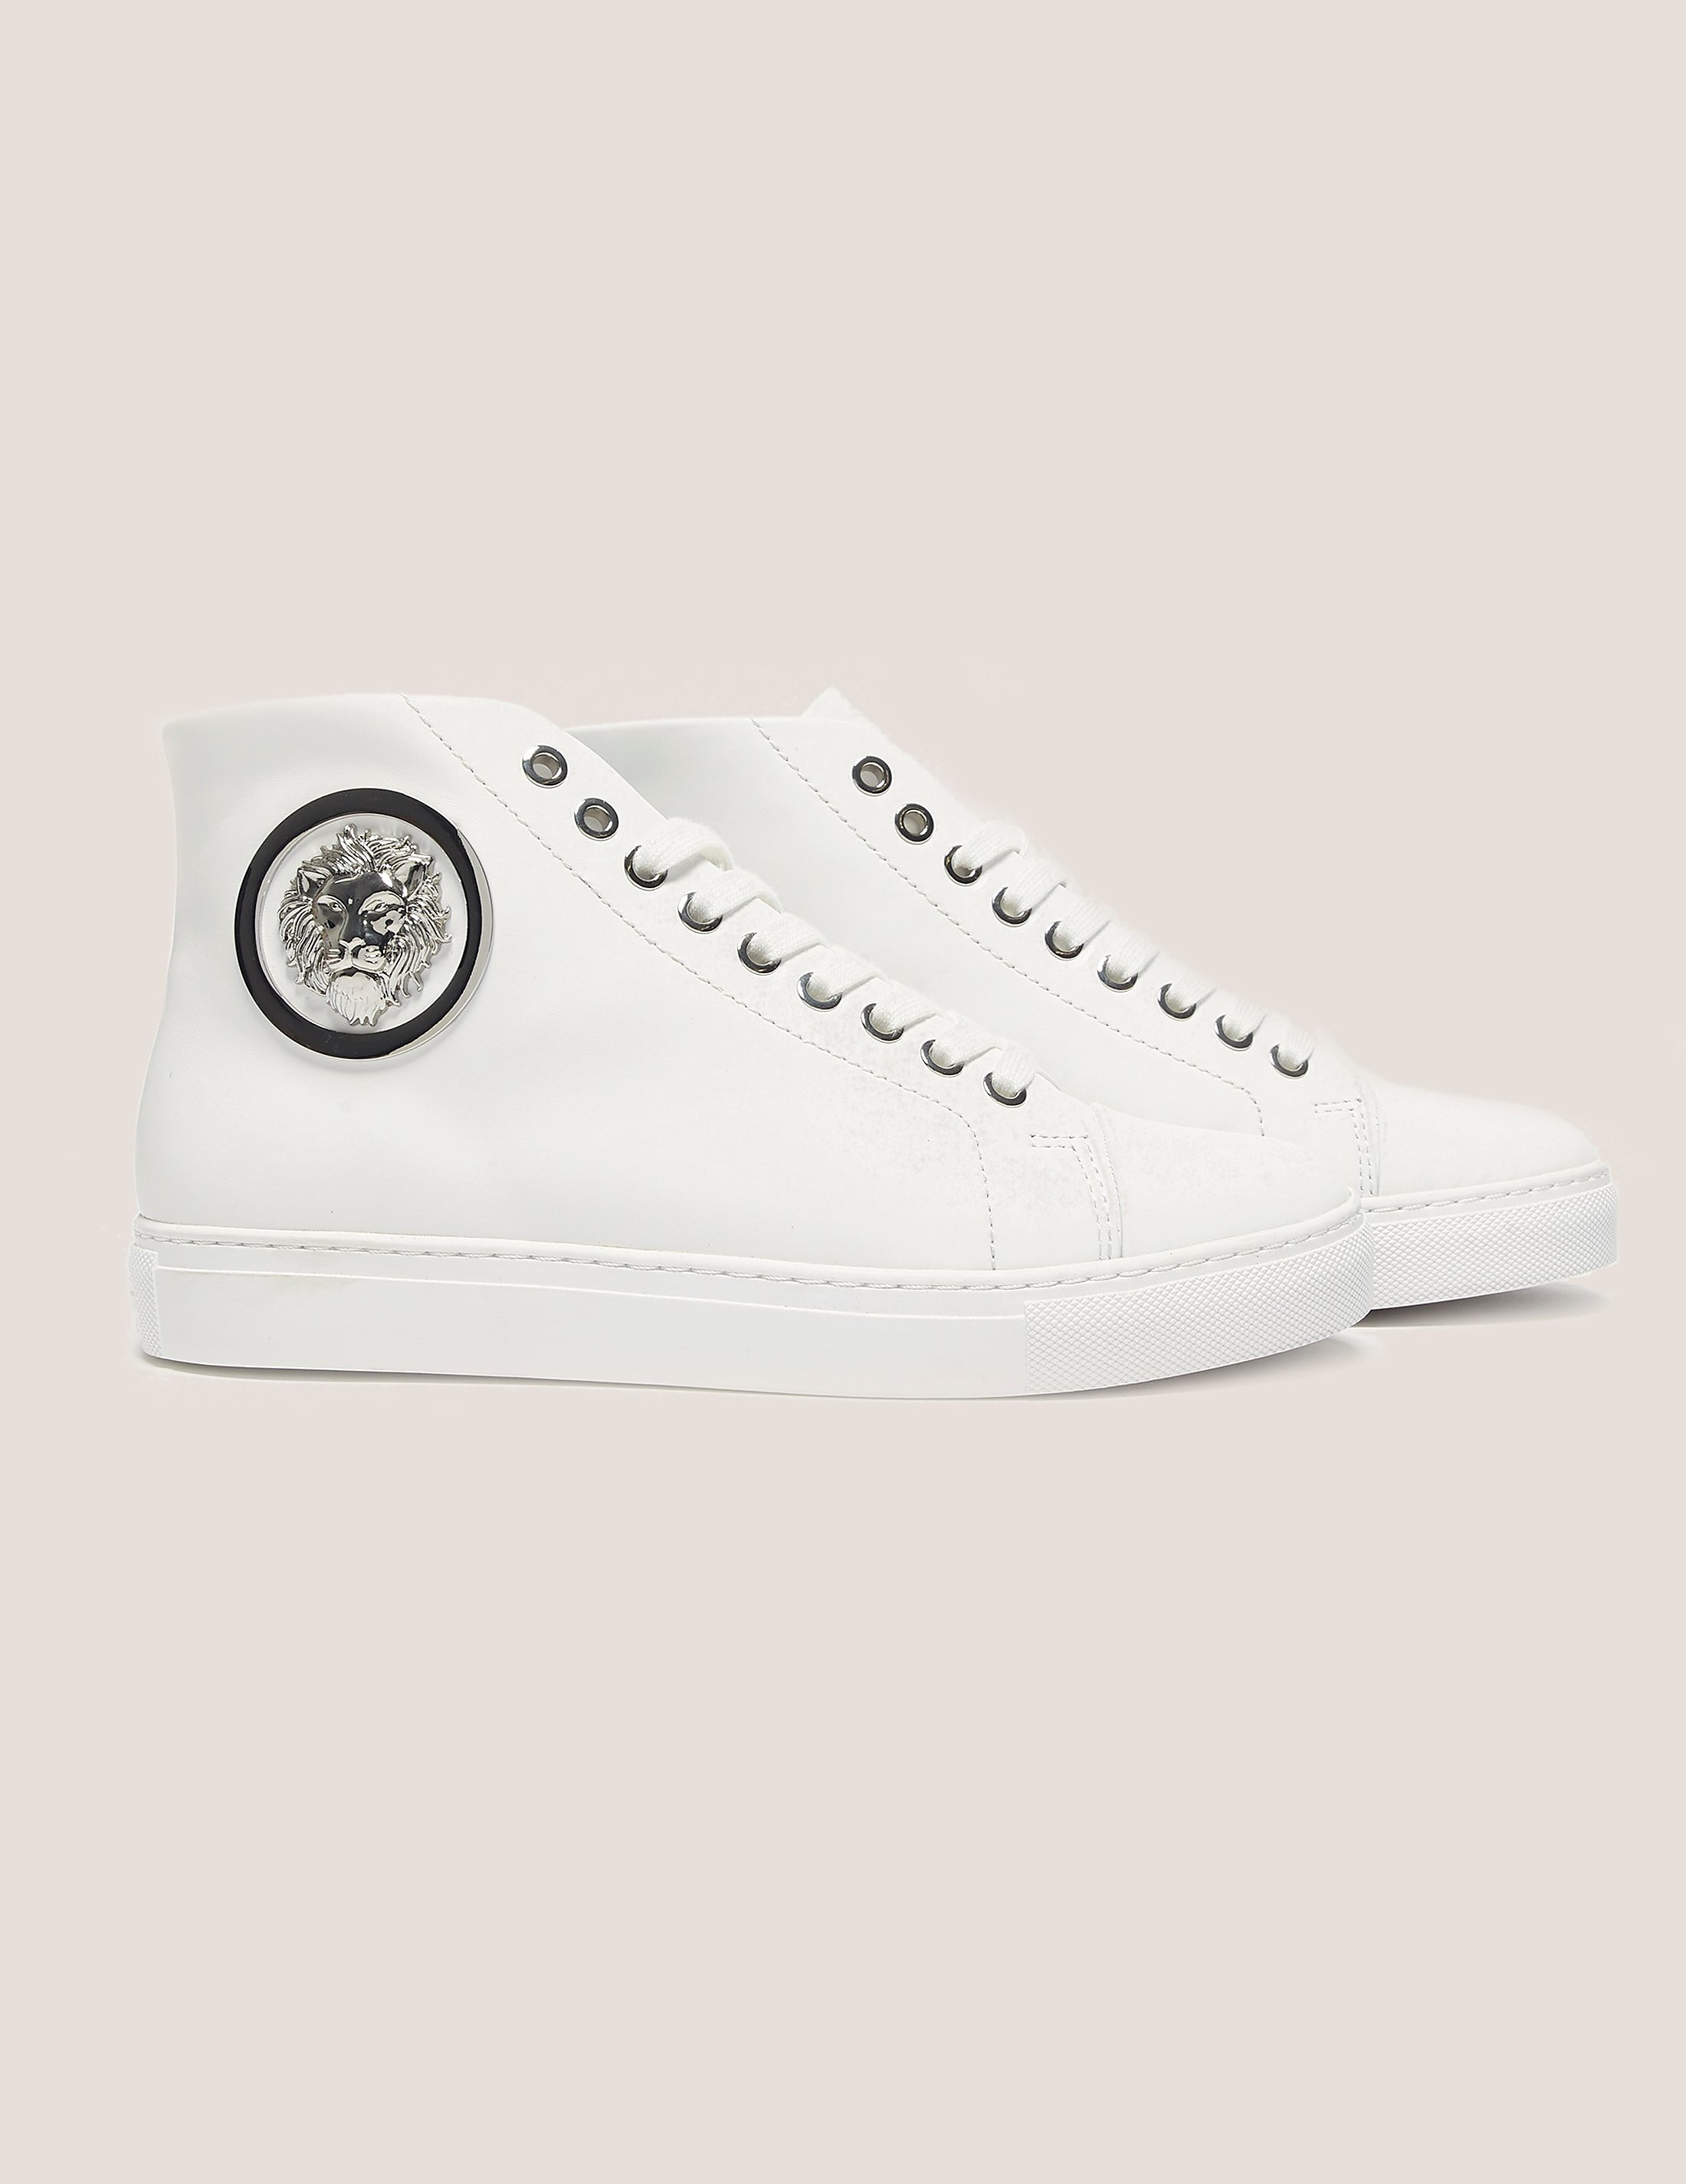 Versus Versace Lion Head High Tops